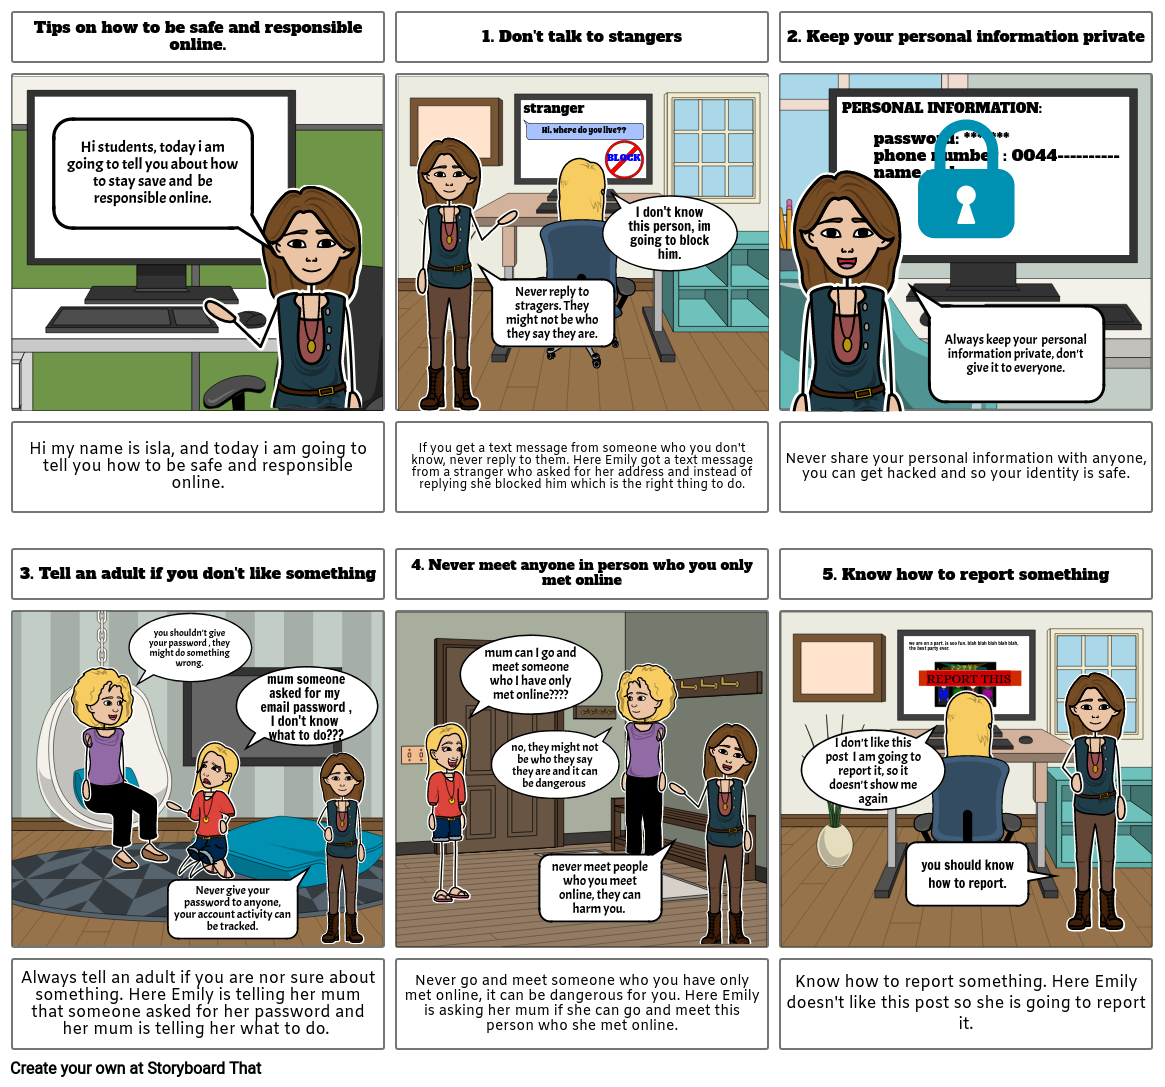 STORYBOARD - HOW TOP BE SAFE AND RESPONSIBLE ONLINE